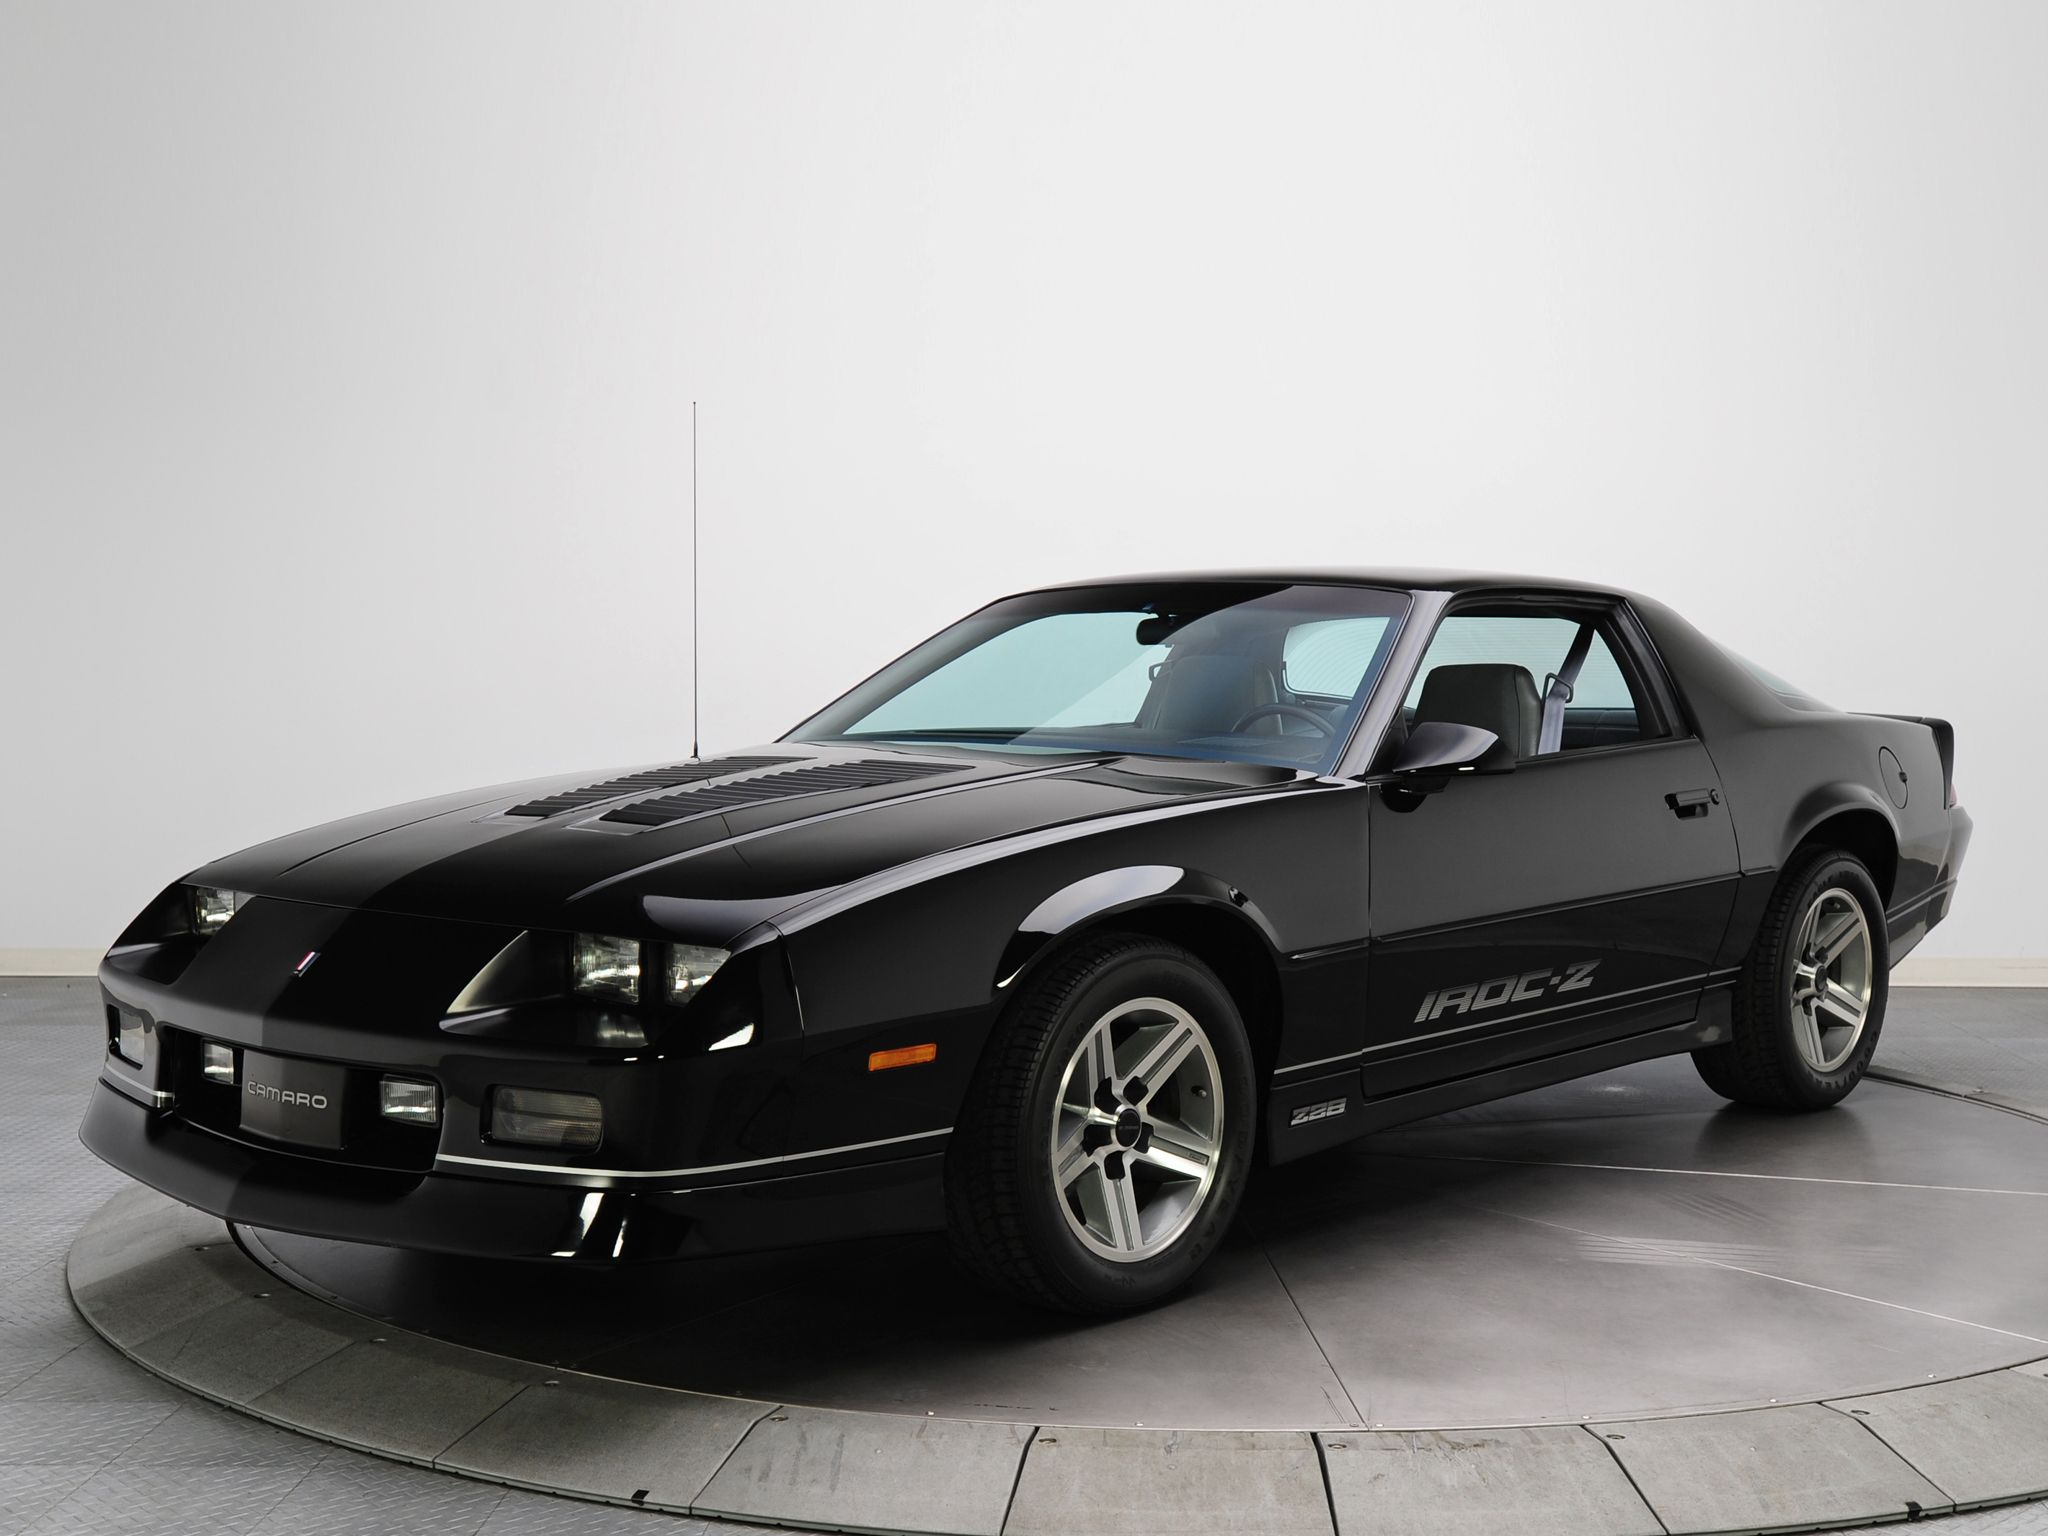 1989 camaro iroc z black 1985 87 chevrolet camaro z28. Black Bedroom Furniture Sets. Home Design Ideas